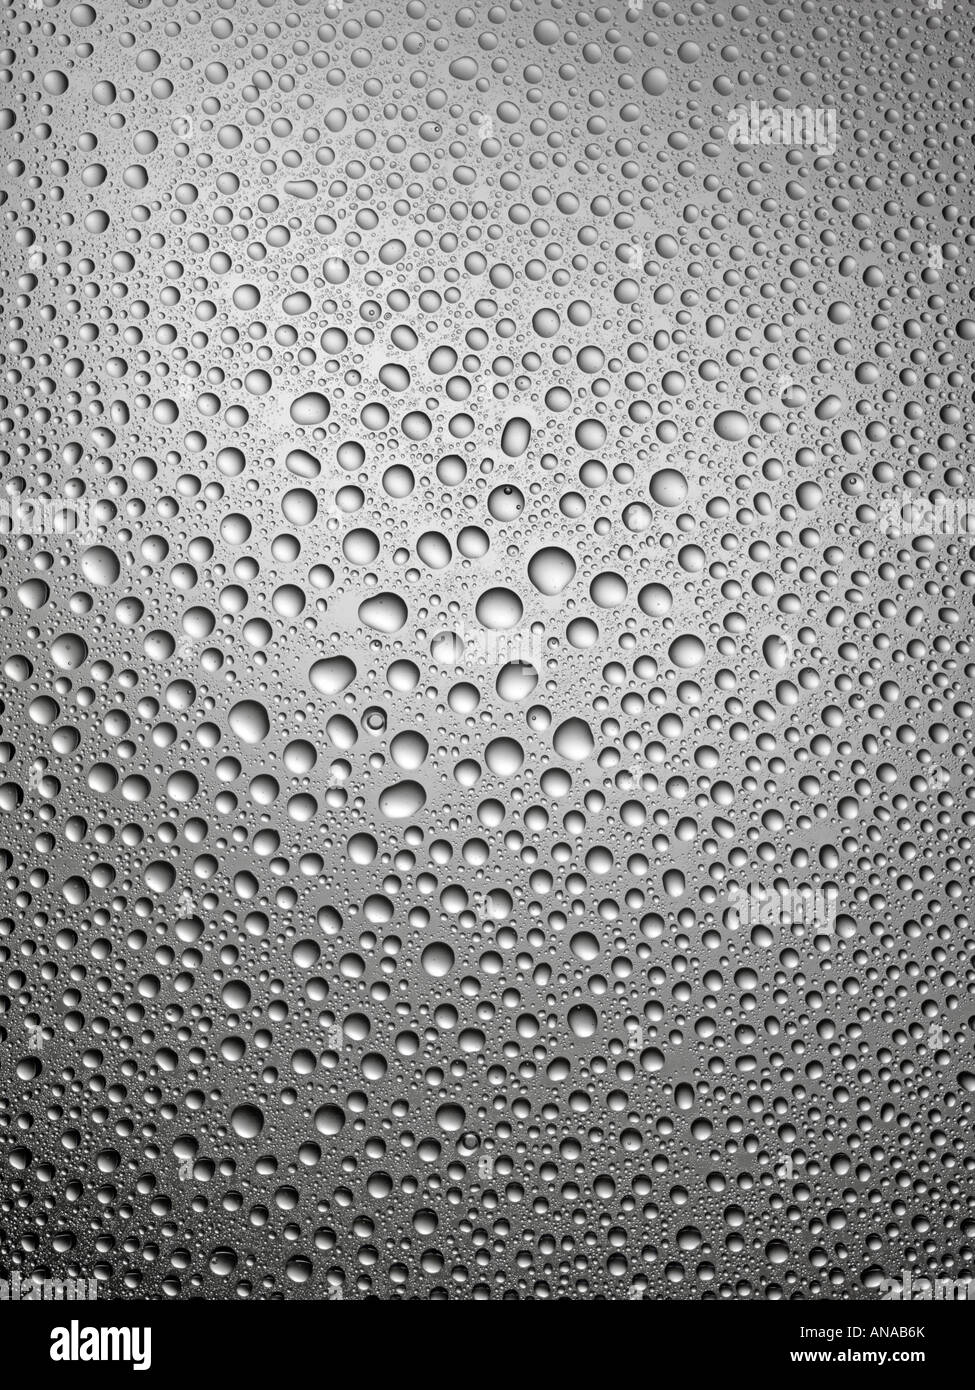 CONDENSATION ON GREY GLASS - Stock Image